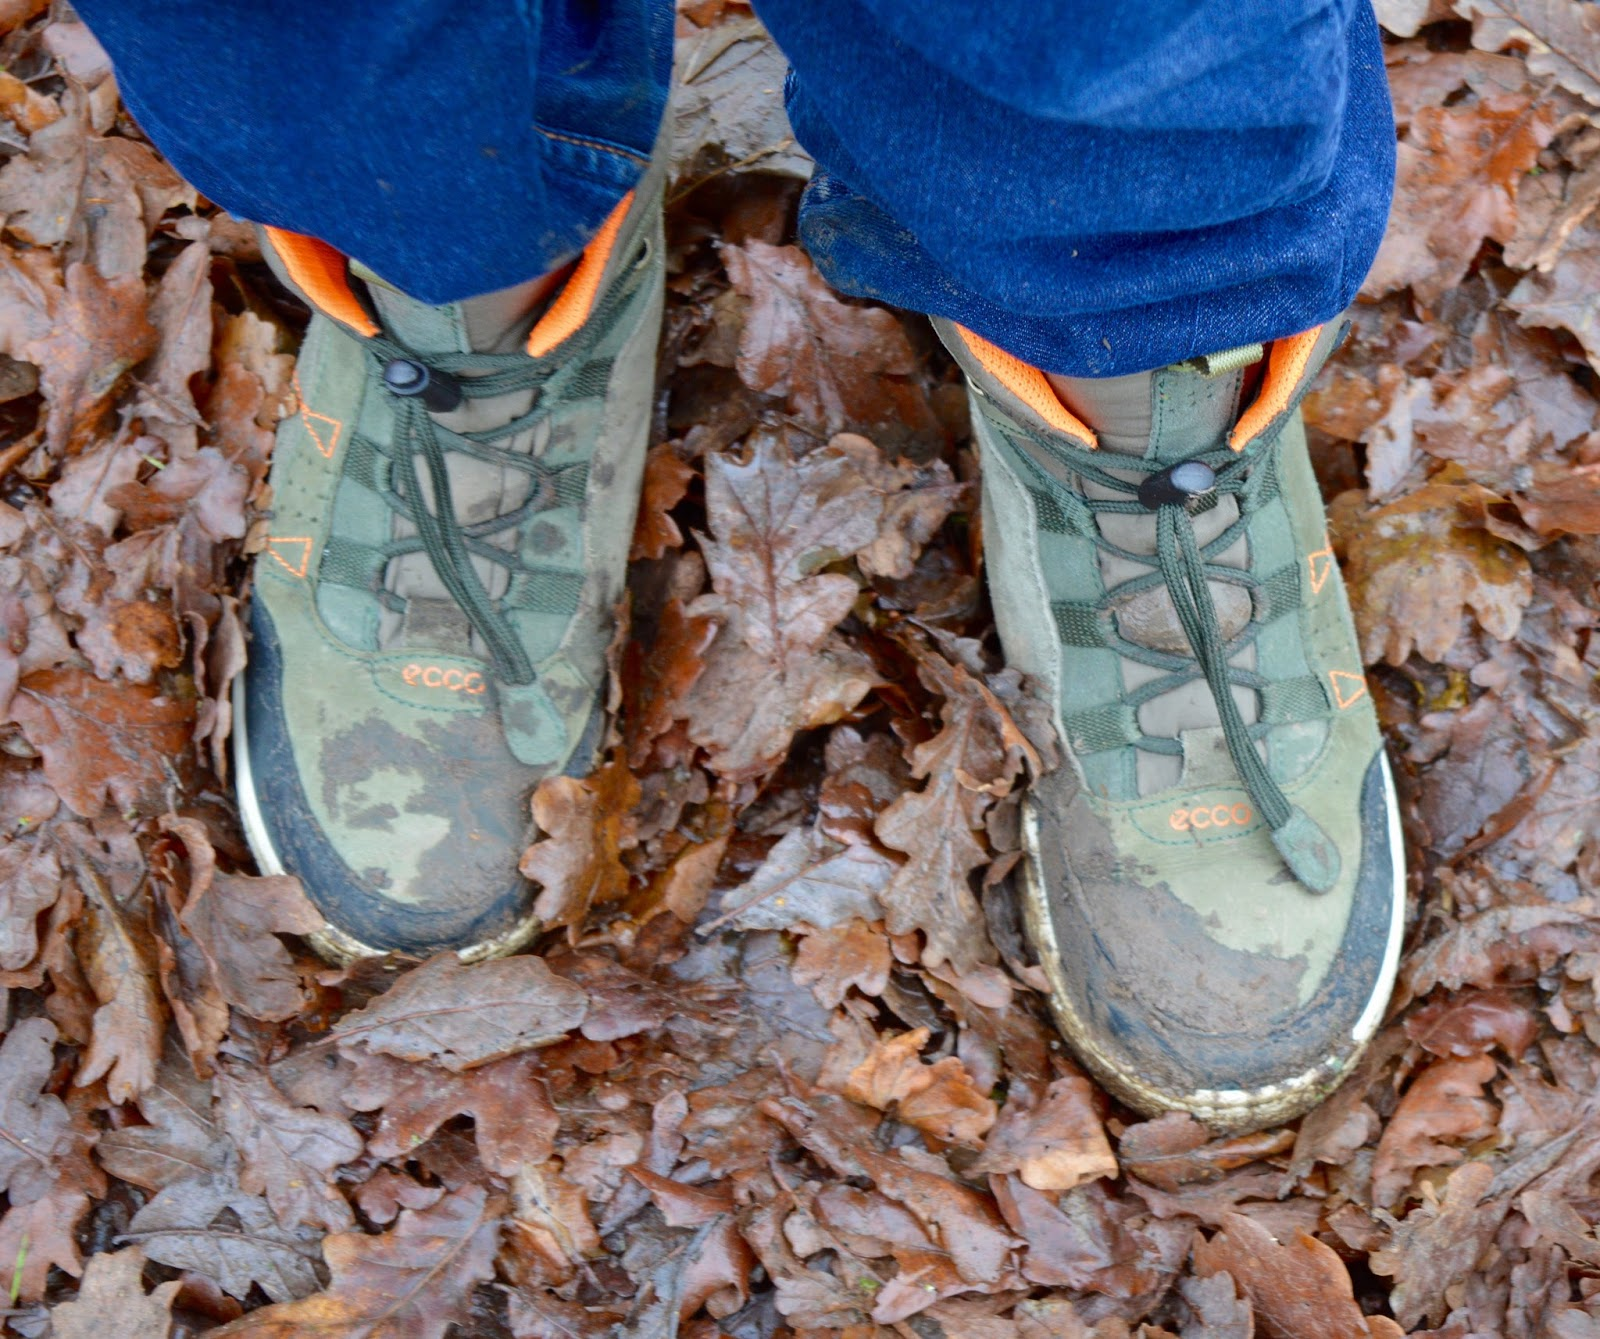 Our Visit to Plessey Woods - A FREE day out in Northumberland. It was very muddy and the perfect chance for Harry to put his GORE-TEX shoes through their paces - GORE-TEX ecco shoes